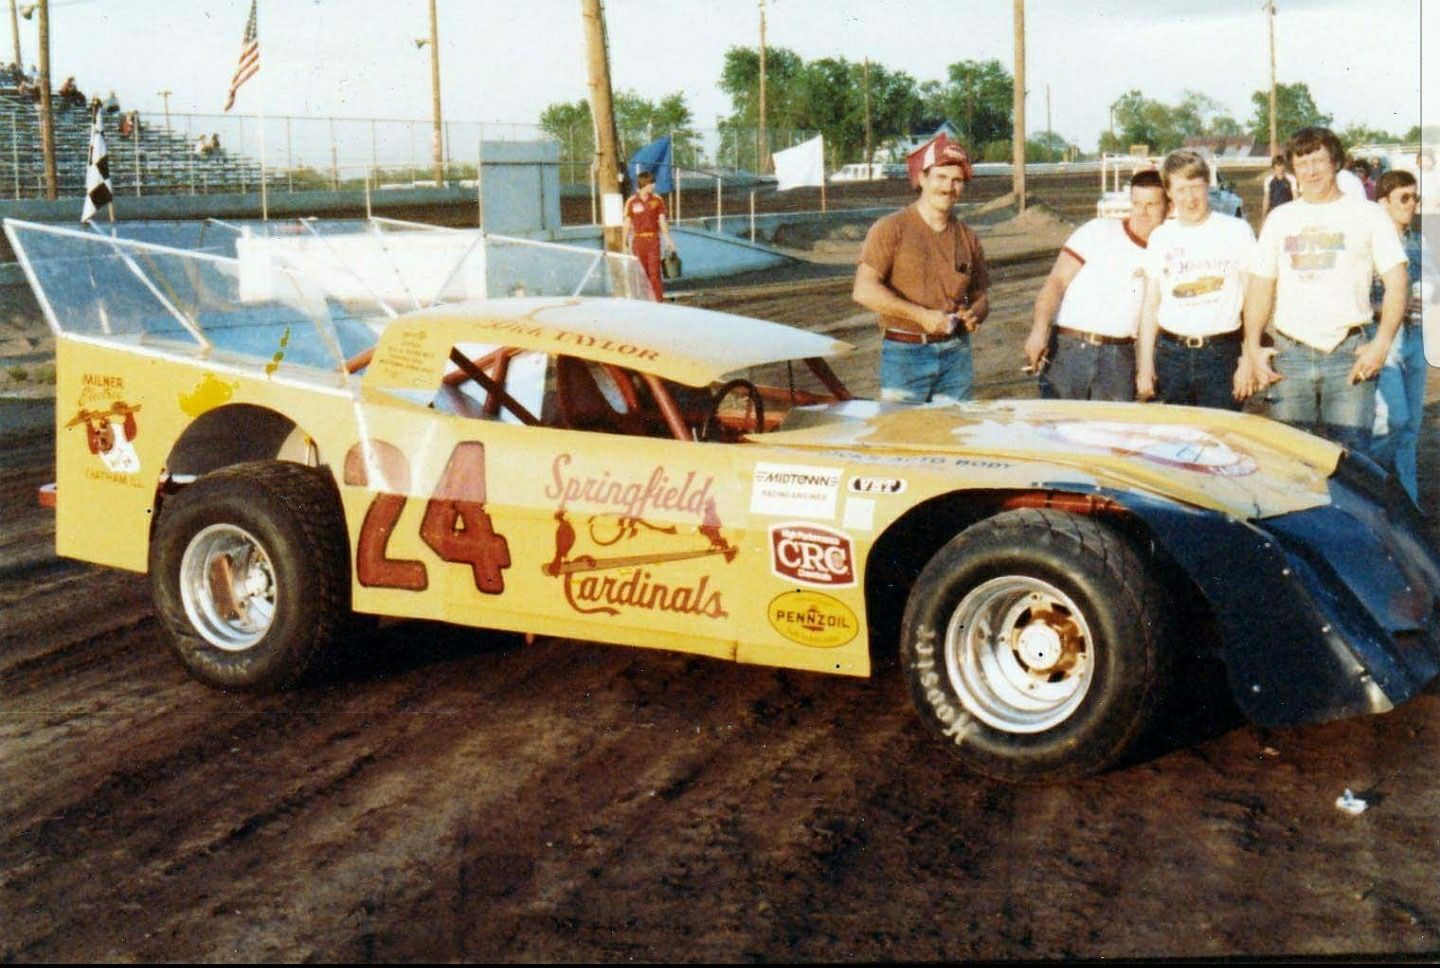 Dick Taylor of Springfield, Illinois Springfield Illinois, Dirt Track Racing,  Vintage Race Car